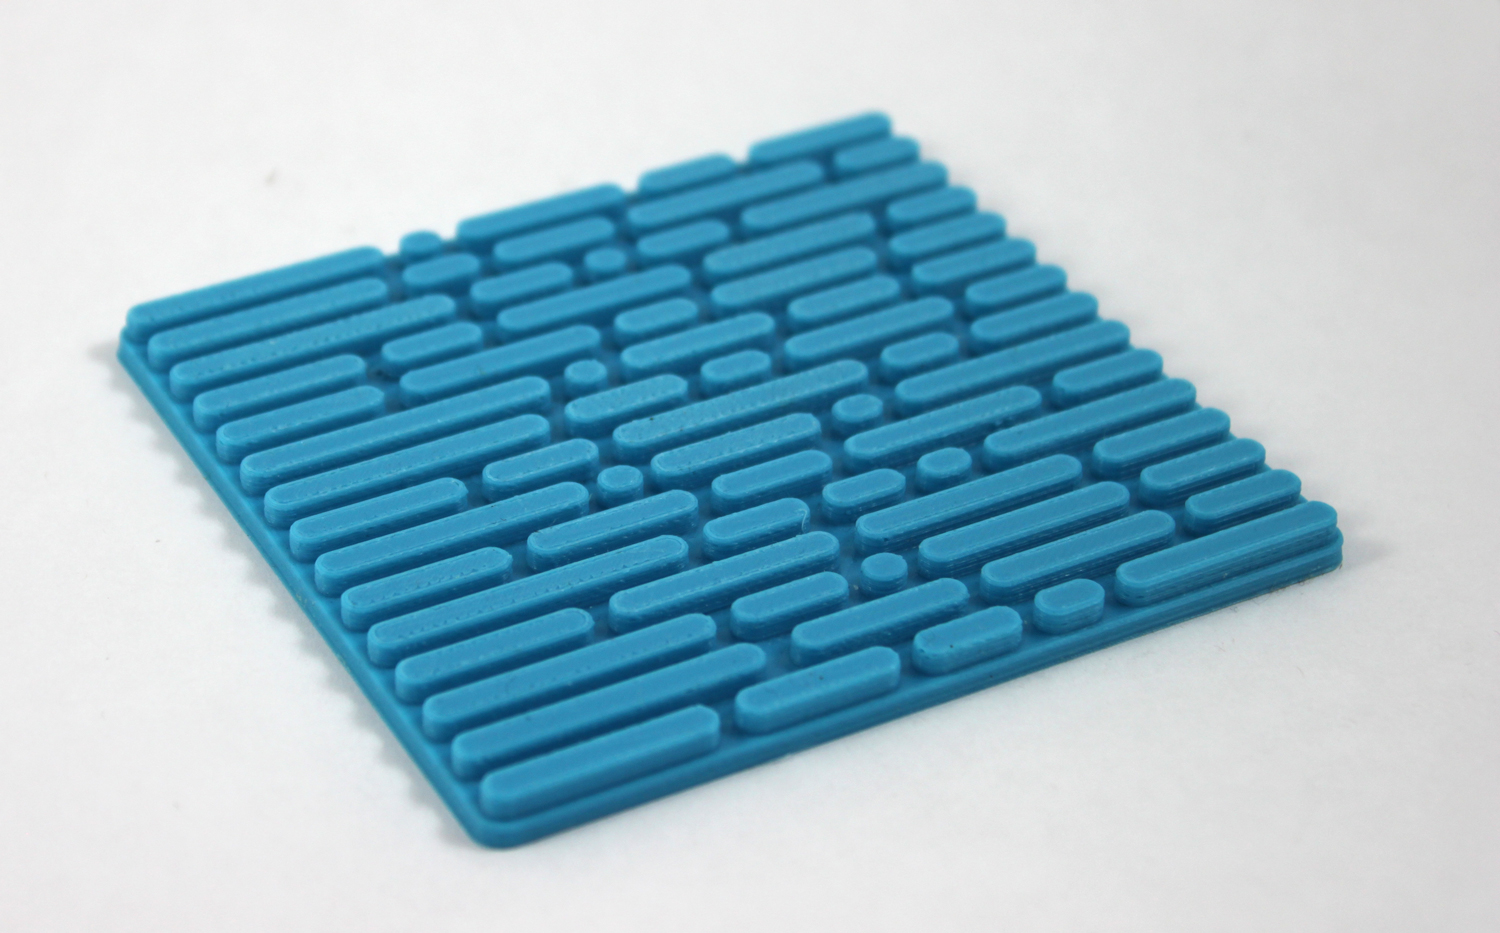 02-3d-printed-generative-design-nodebox-solidworks-ultimaker-2-coaster-blue